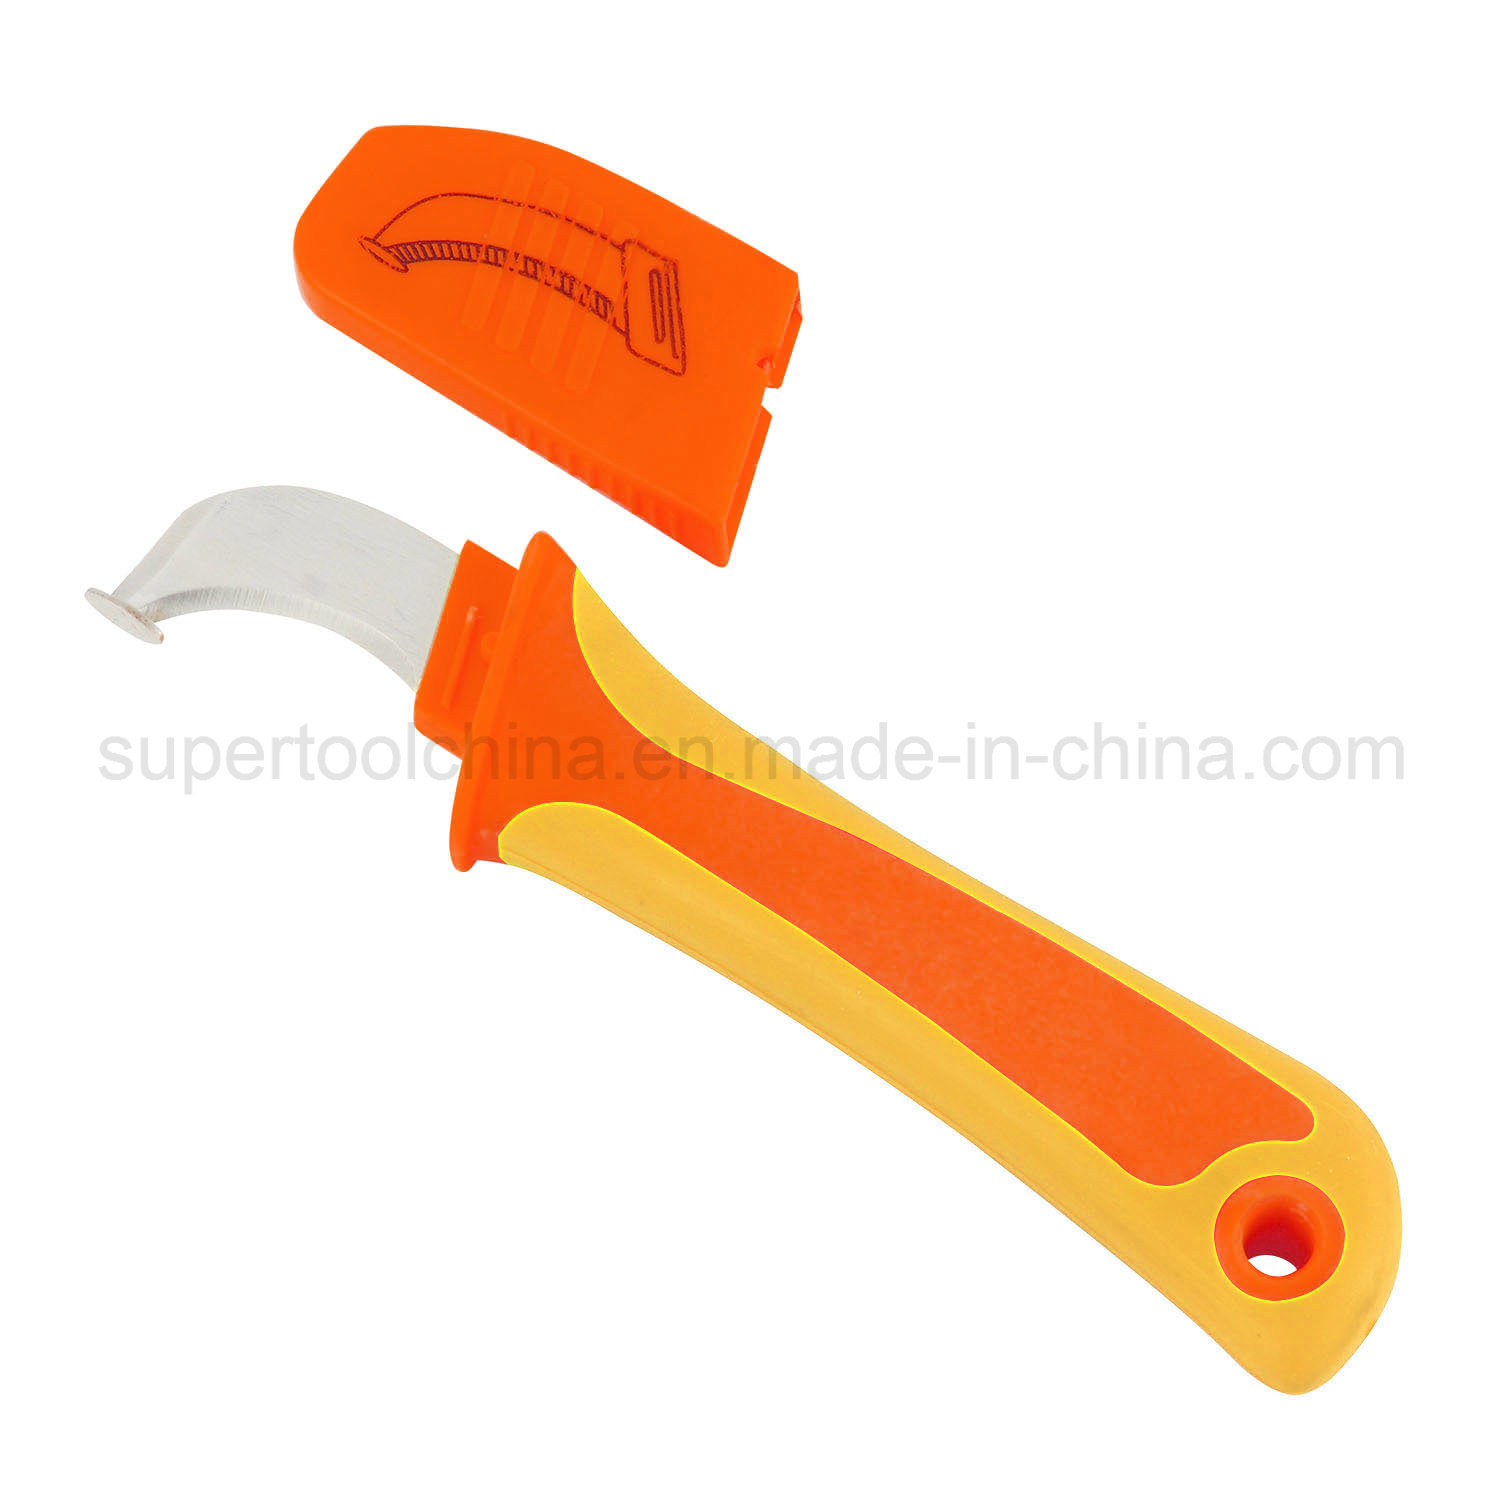 1000V Insulated Electricians Stripping Knife (386103)